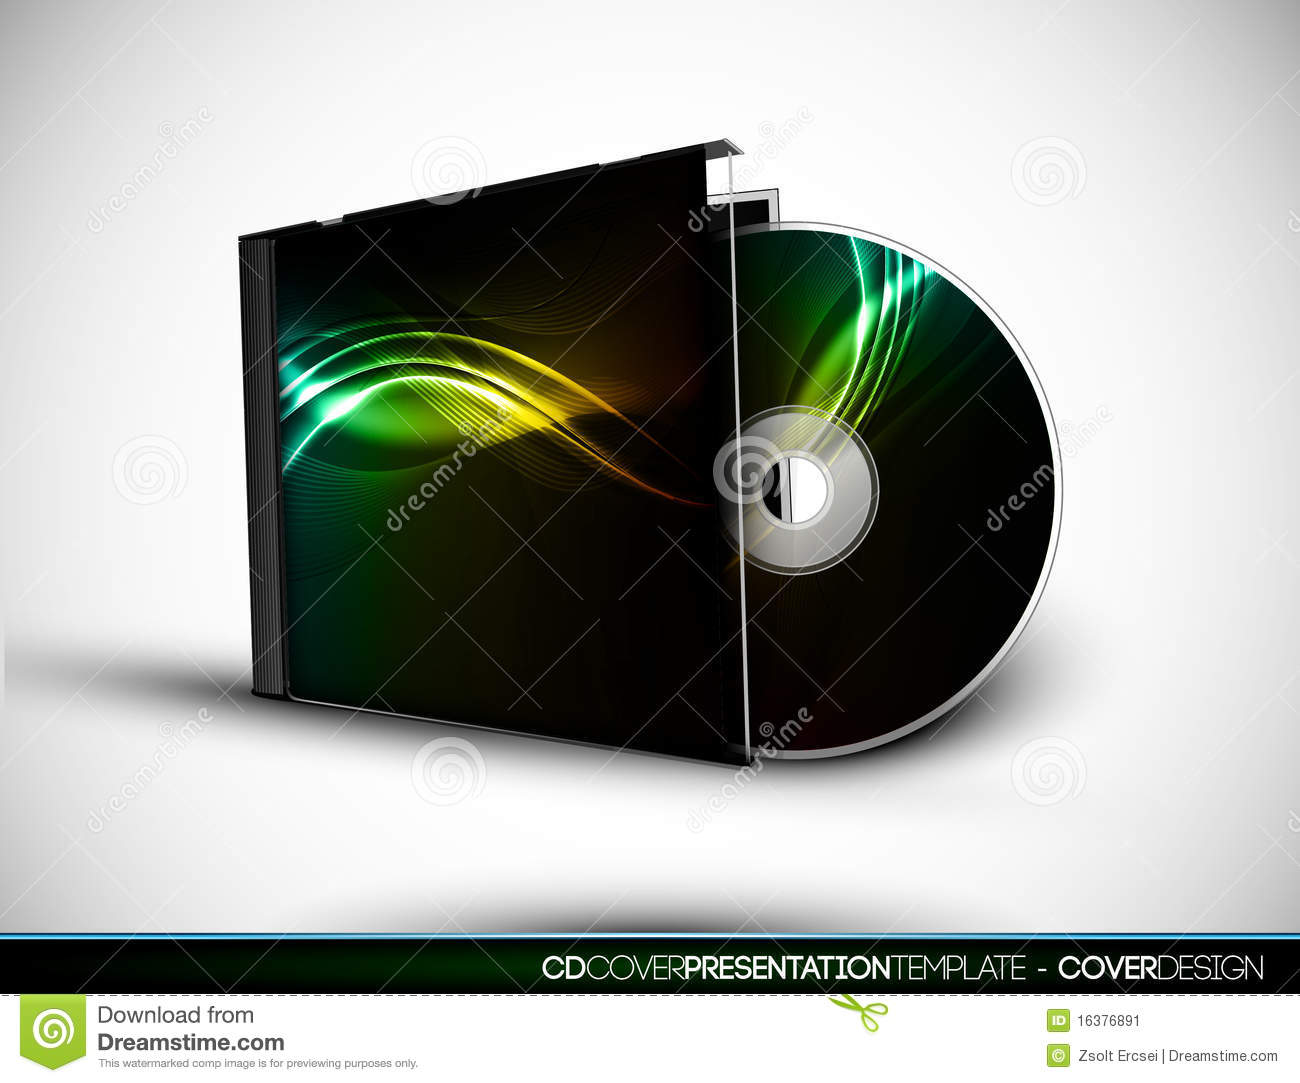 cd cover design with 3d presentation template stock vector - image, Presentation templates